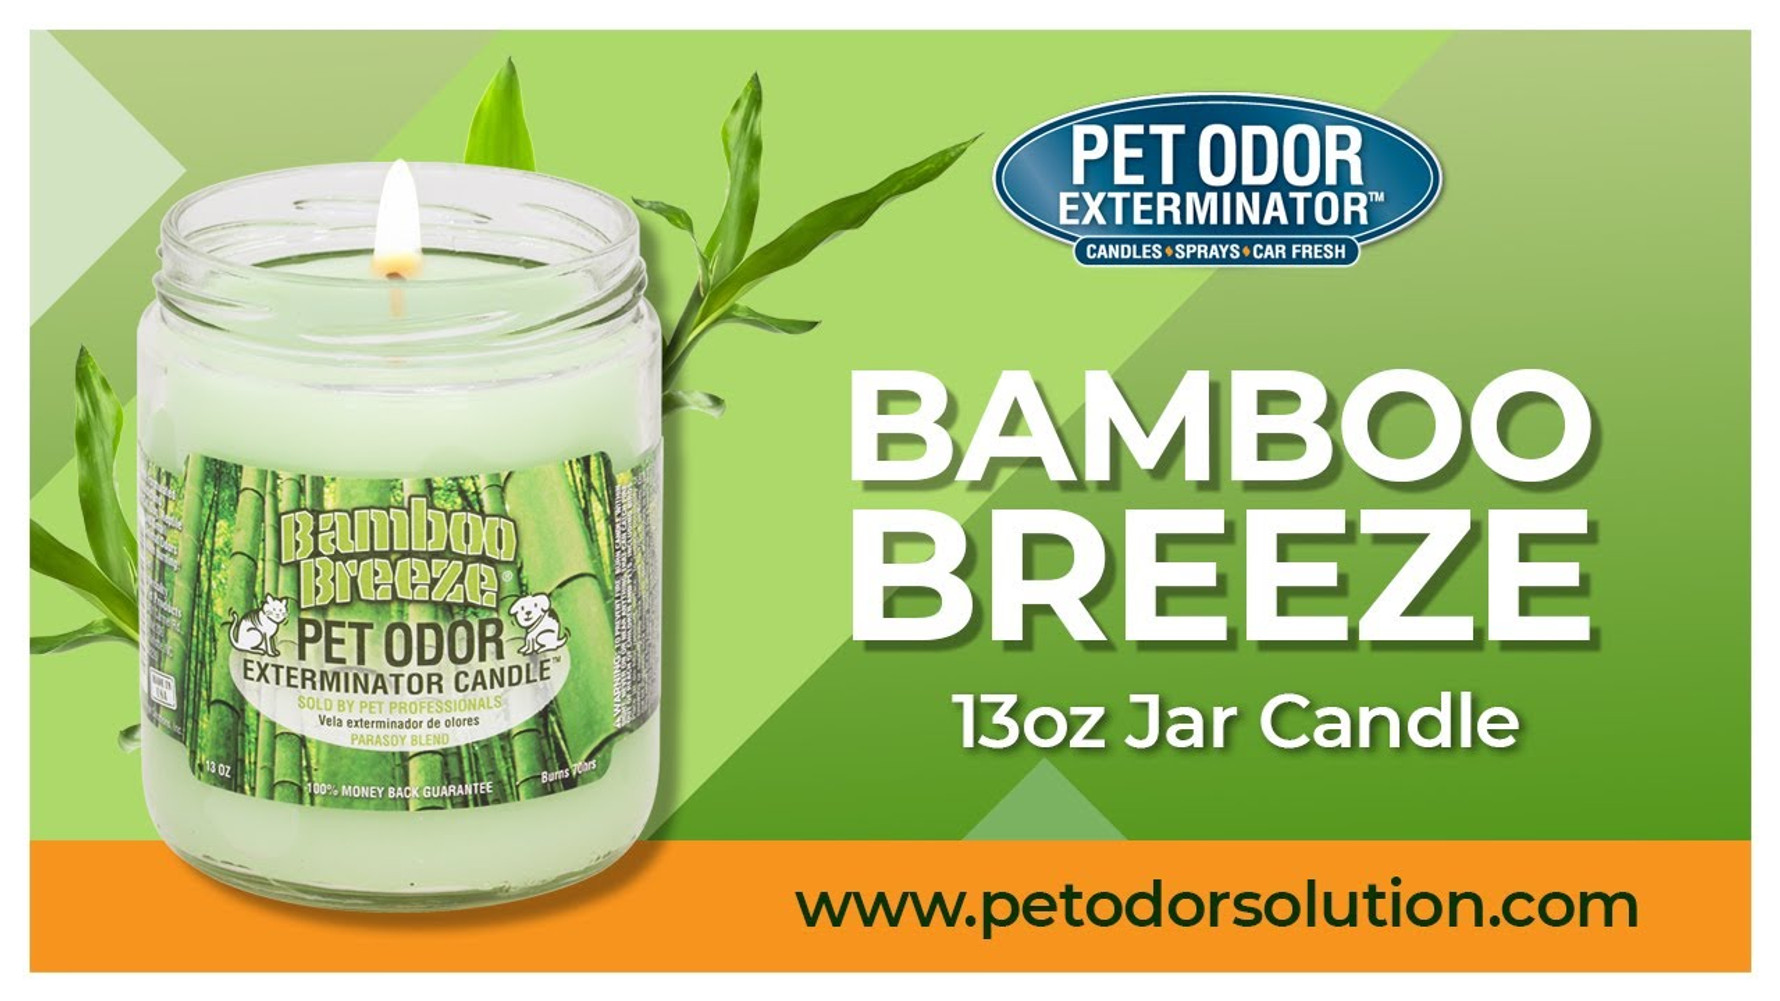 Meet the Bamboo Breeze 13oz Jar Candle from Pet Odor Exterminator!